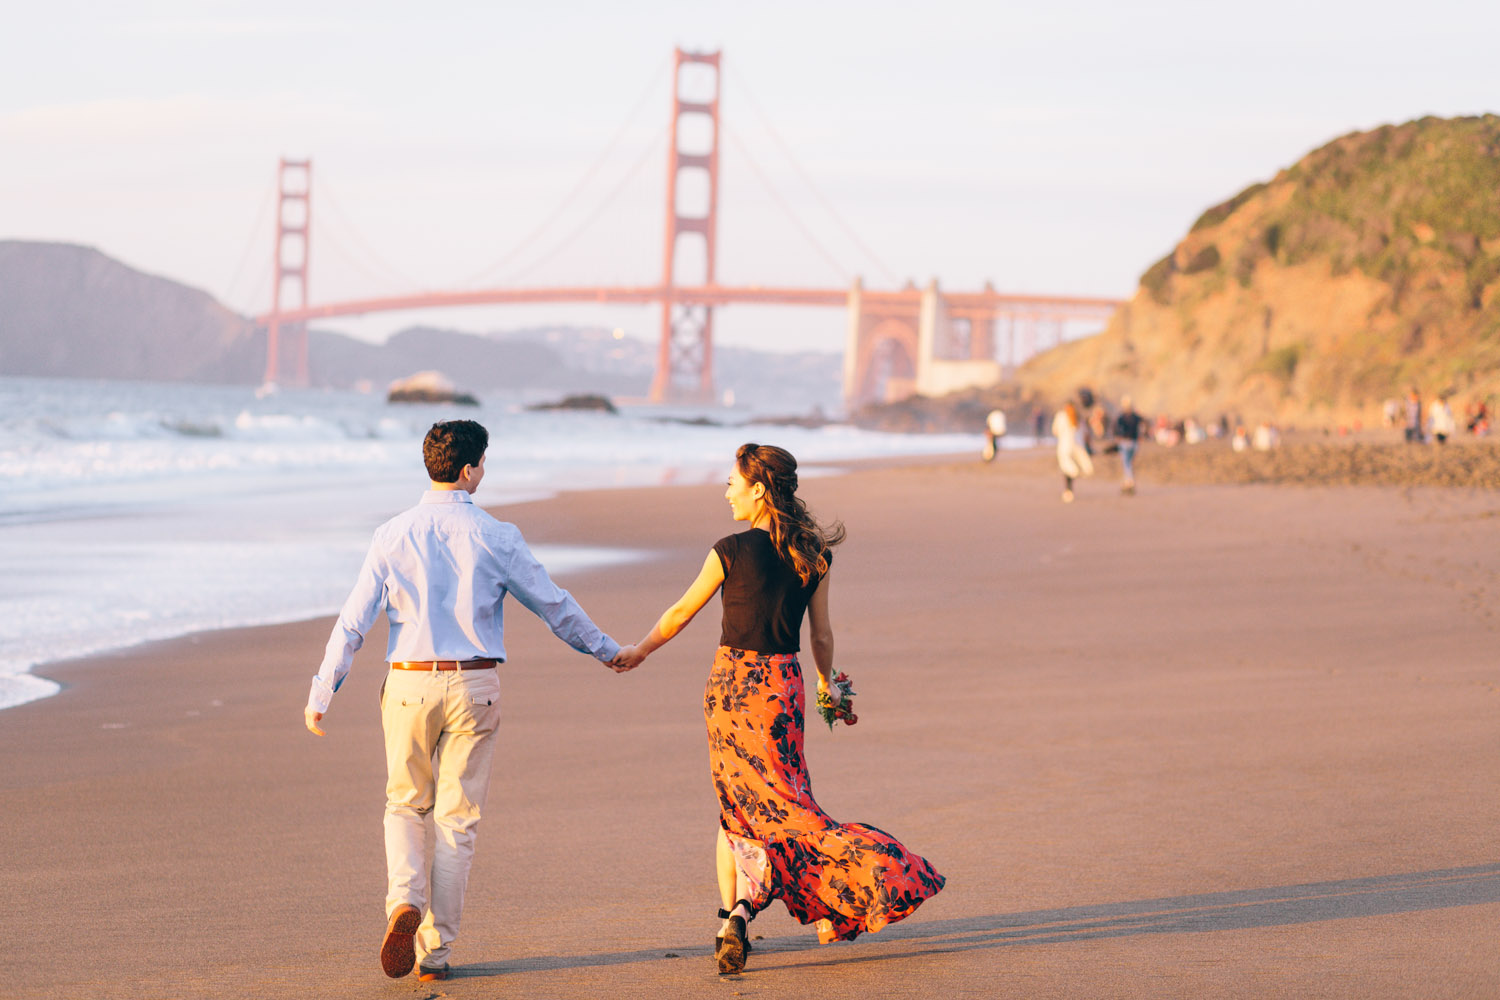 Engagement-Wedding-Photographer-San-Francisco-Engagement-session-Baker-Beach-Palace-of-Fine-Arts-and-Legion-of-Honor-byJBJ-Pictures-13.jpg